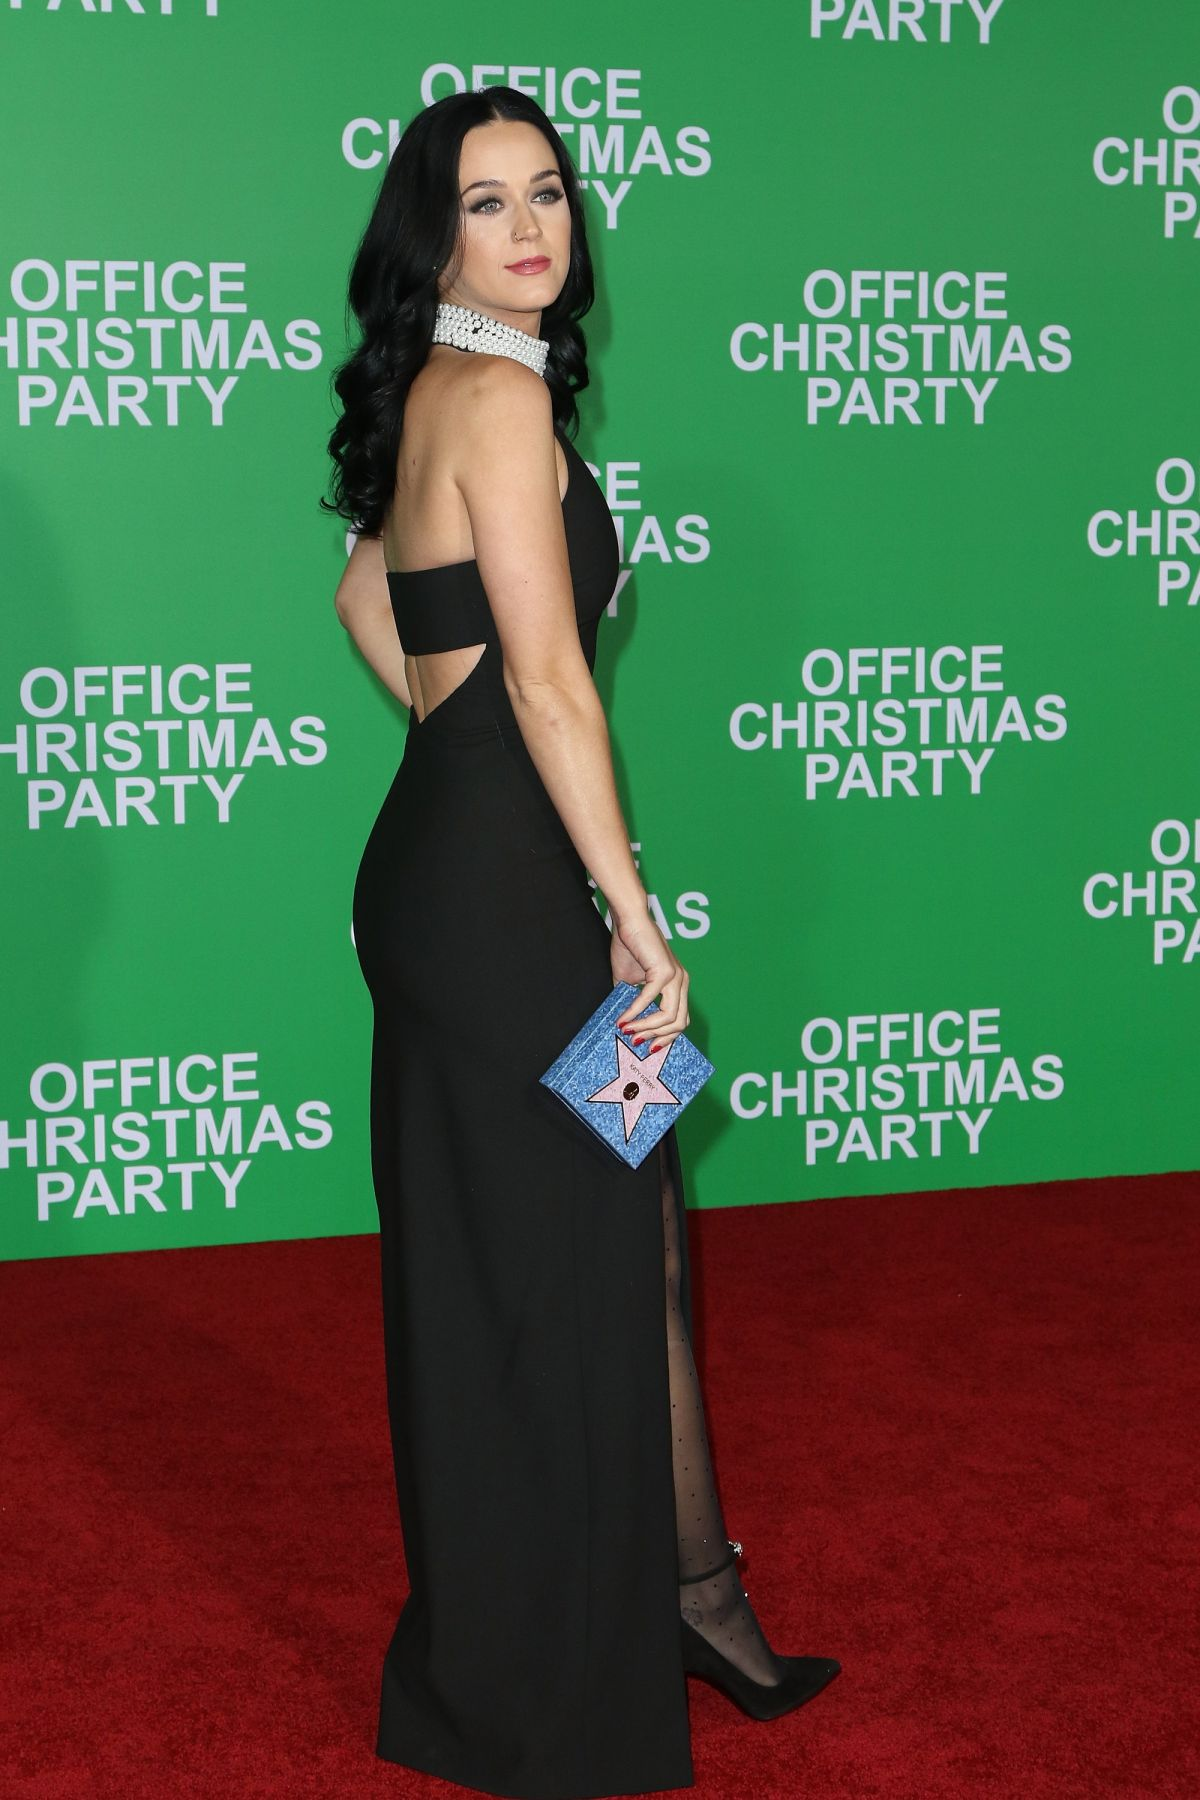 katy-perry-at-office-christmas-party-premiere-in-westwood-12-07 ...